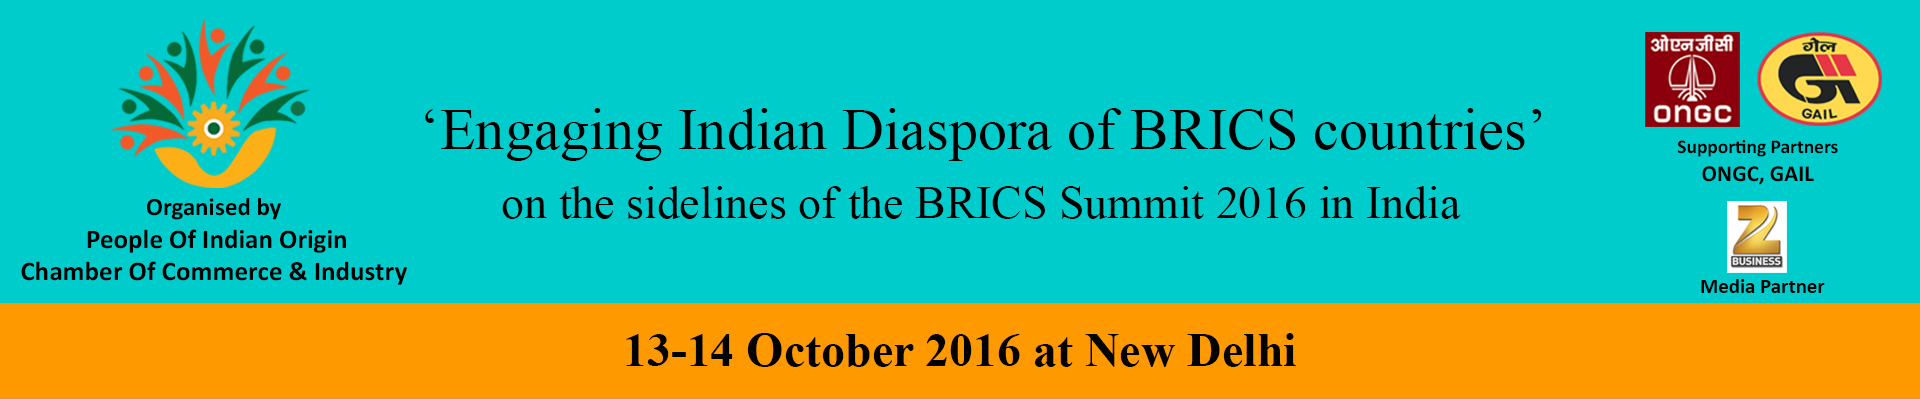 PIOCCI Conference for Indian Diaspora on 14th Oct 2016